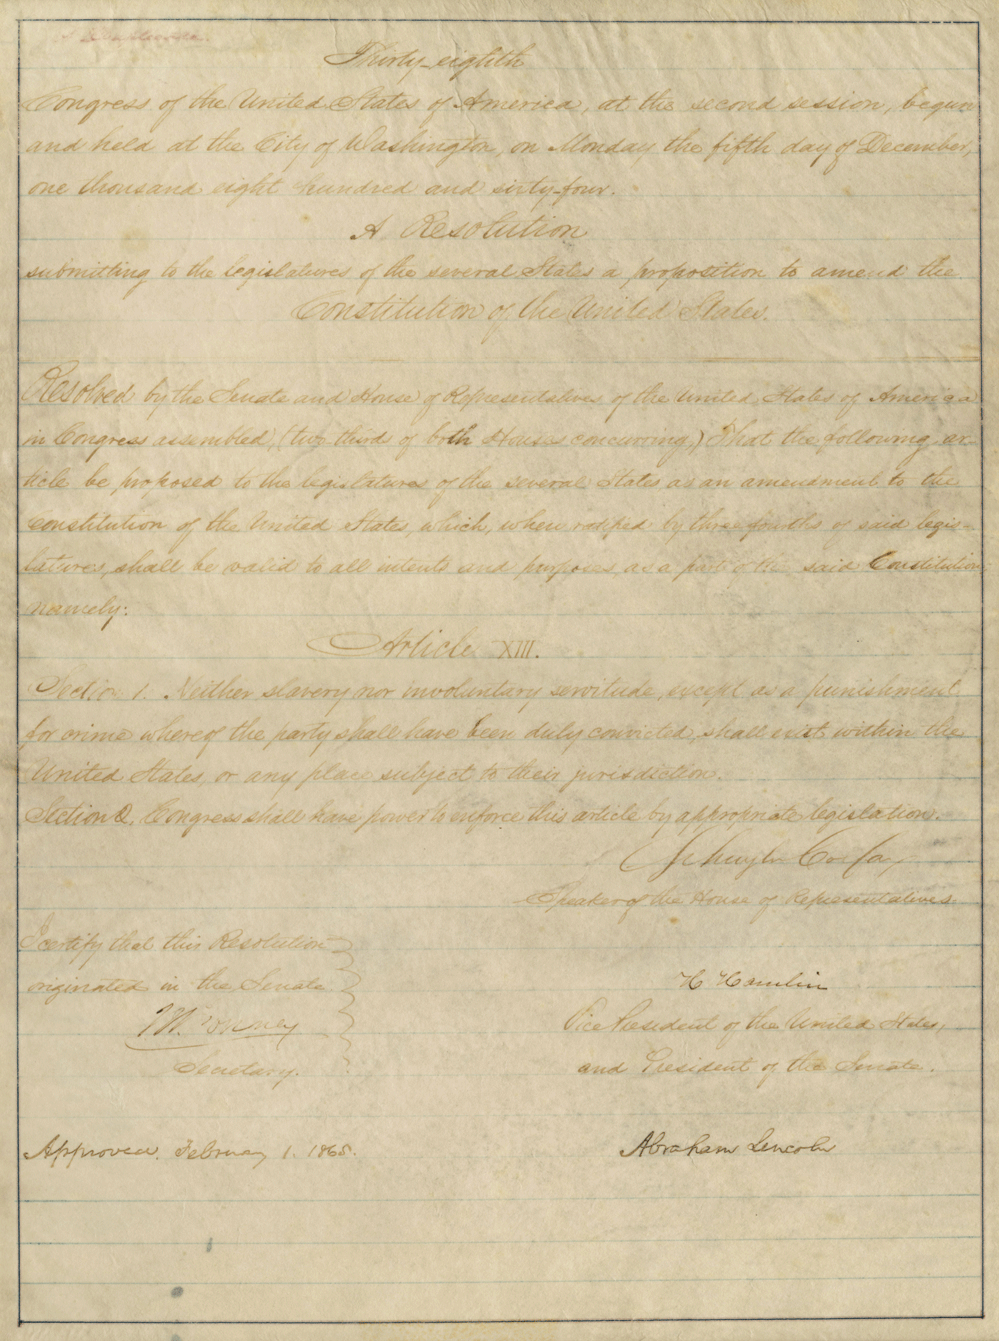 abolishing slavery the thirteenth amendment signed by abraham lincoln the colfax copy of the thirteenth amendment